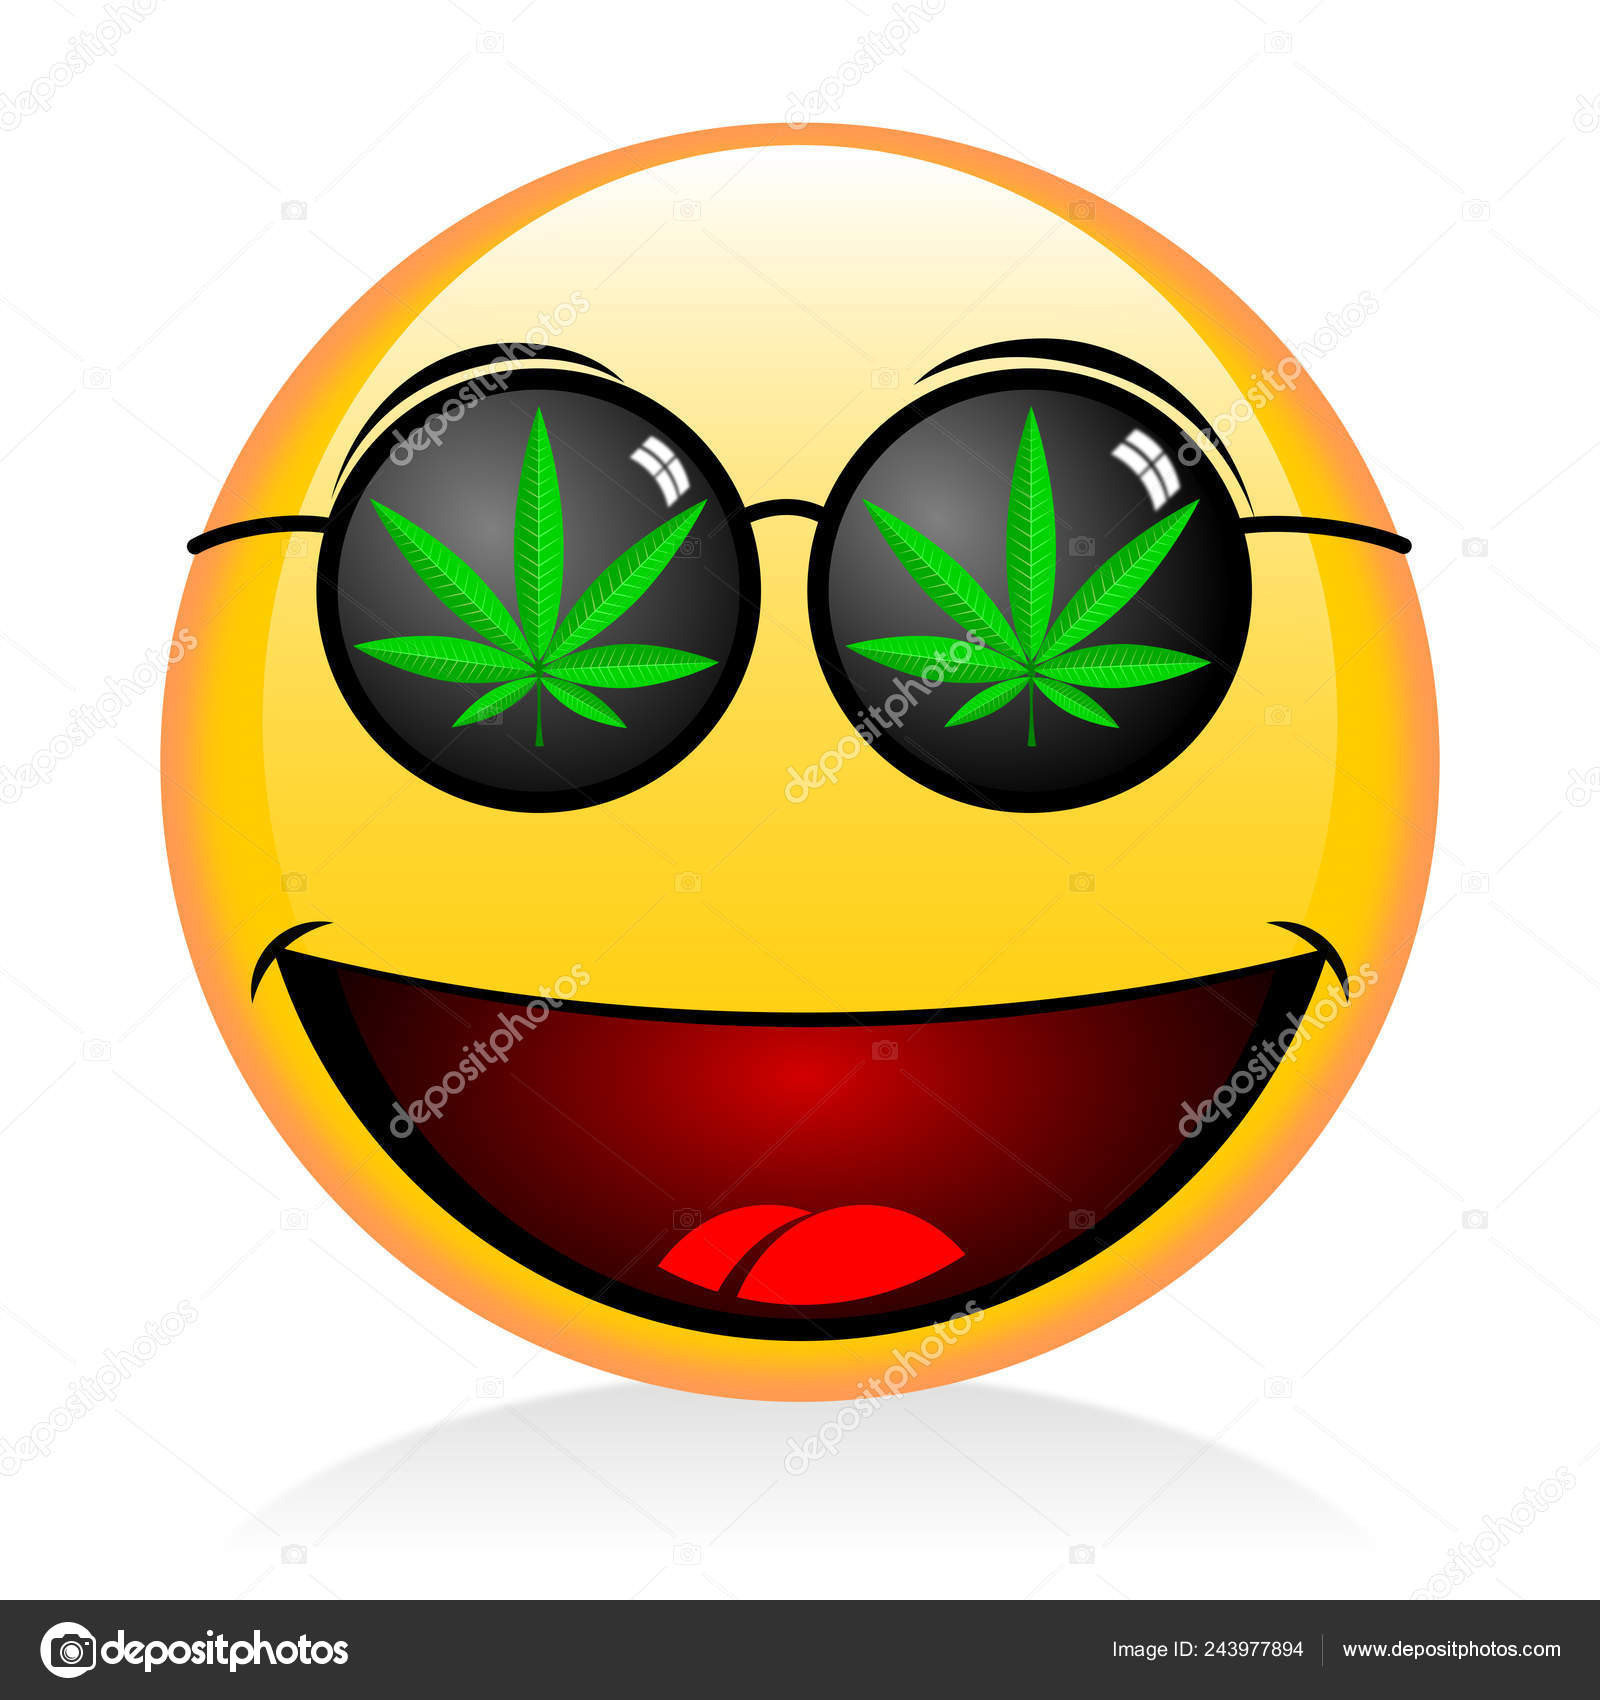 Emoji Smoking Weed Funny Face — Stock Photo © 3d_generator #243977894